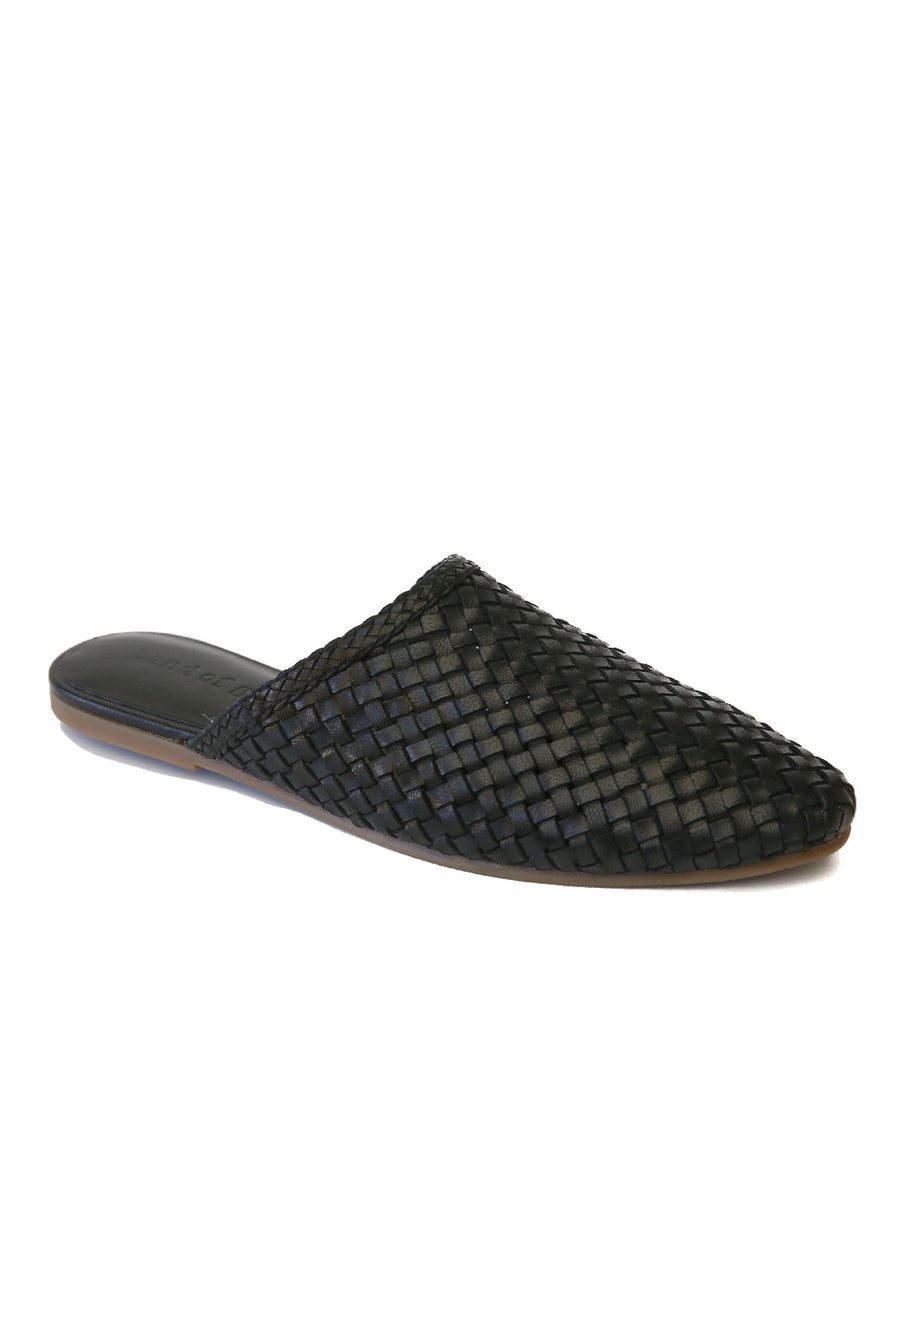 Litha Black Leather Woven Mule Master